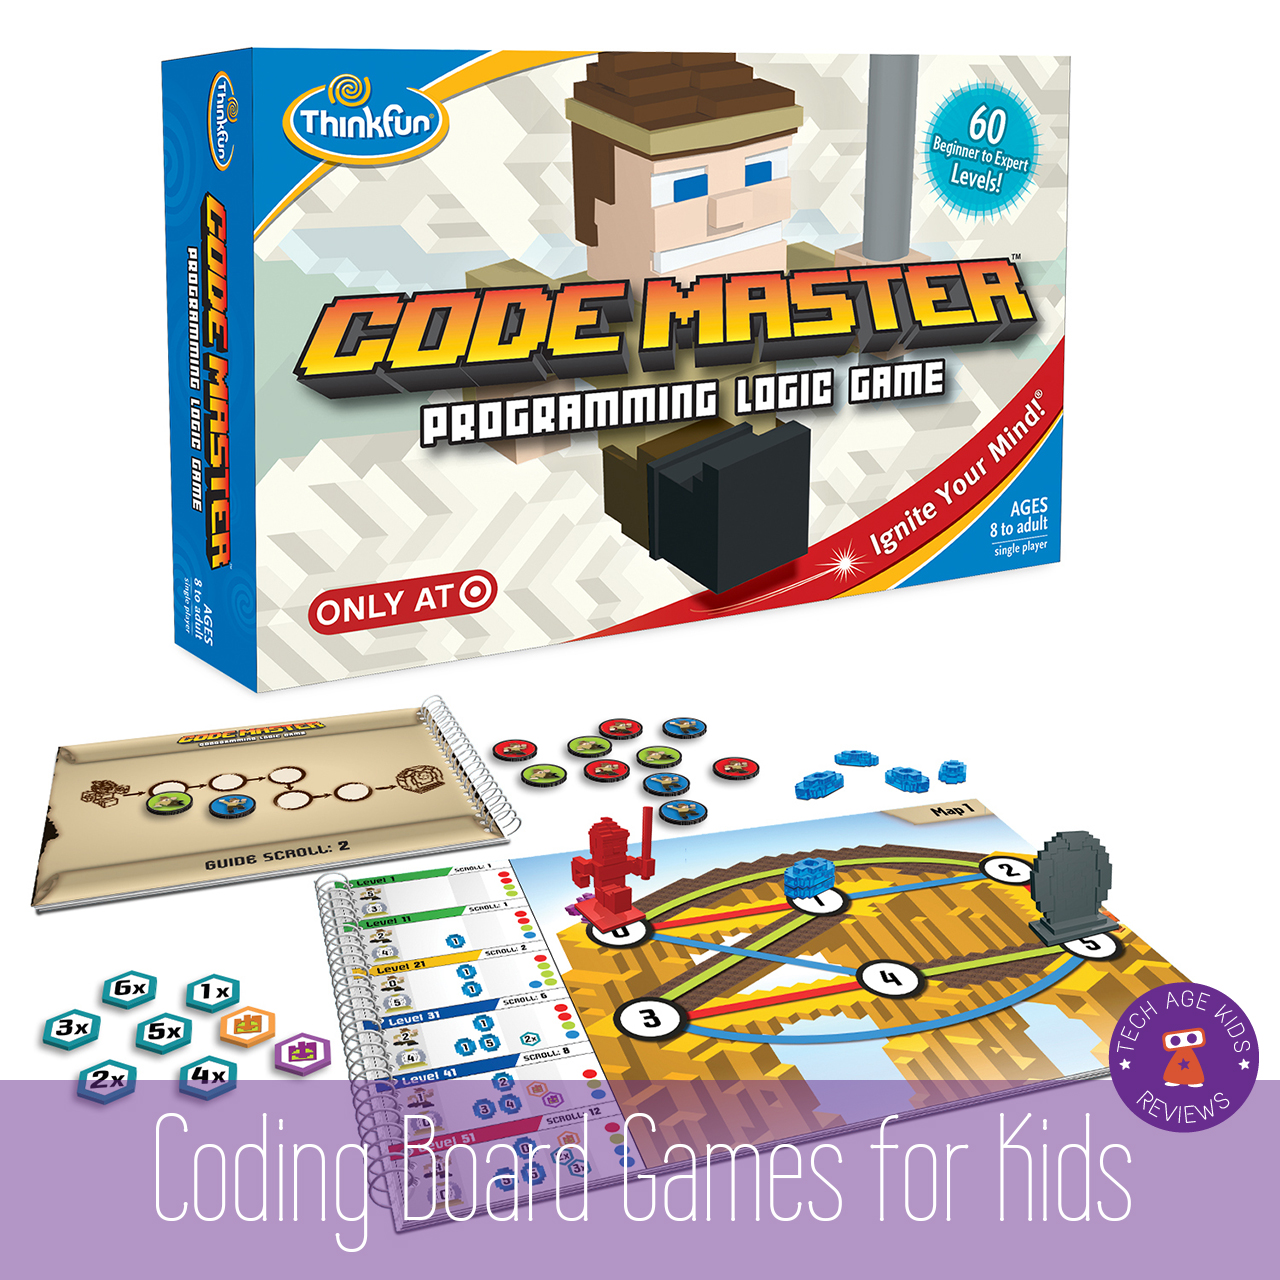 Stem Programs For Teens: Board Games That Teach Coding Concepts To Kids And Teens